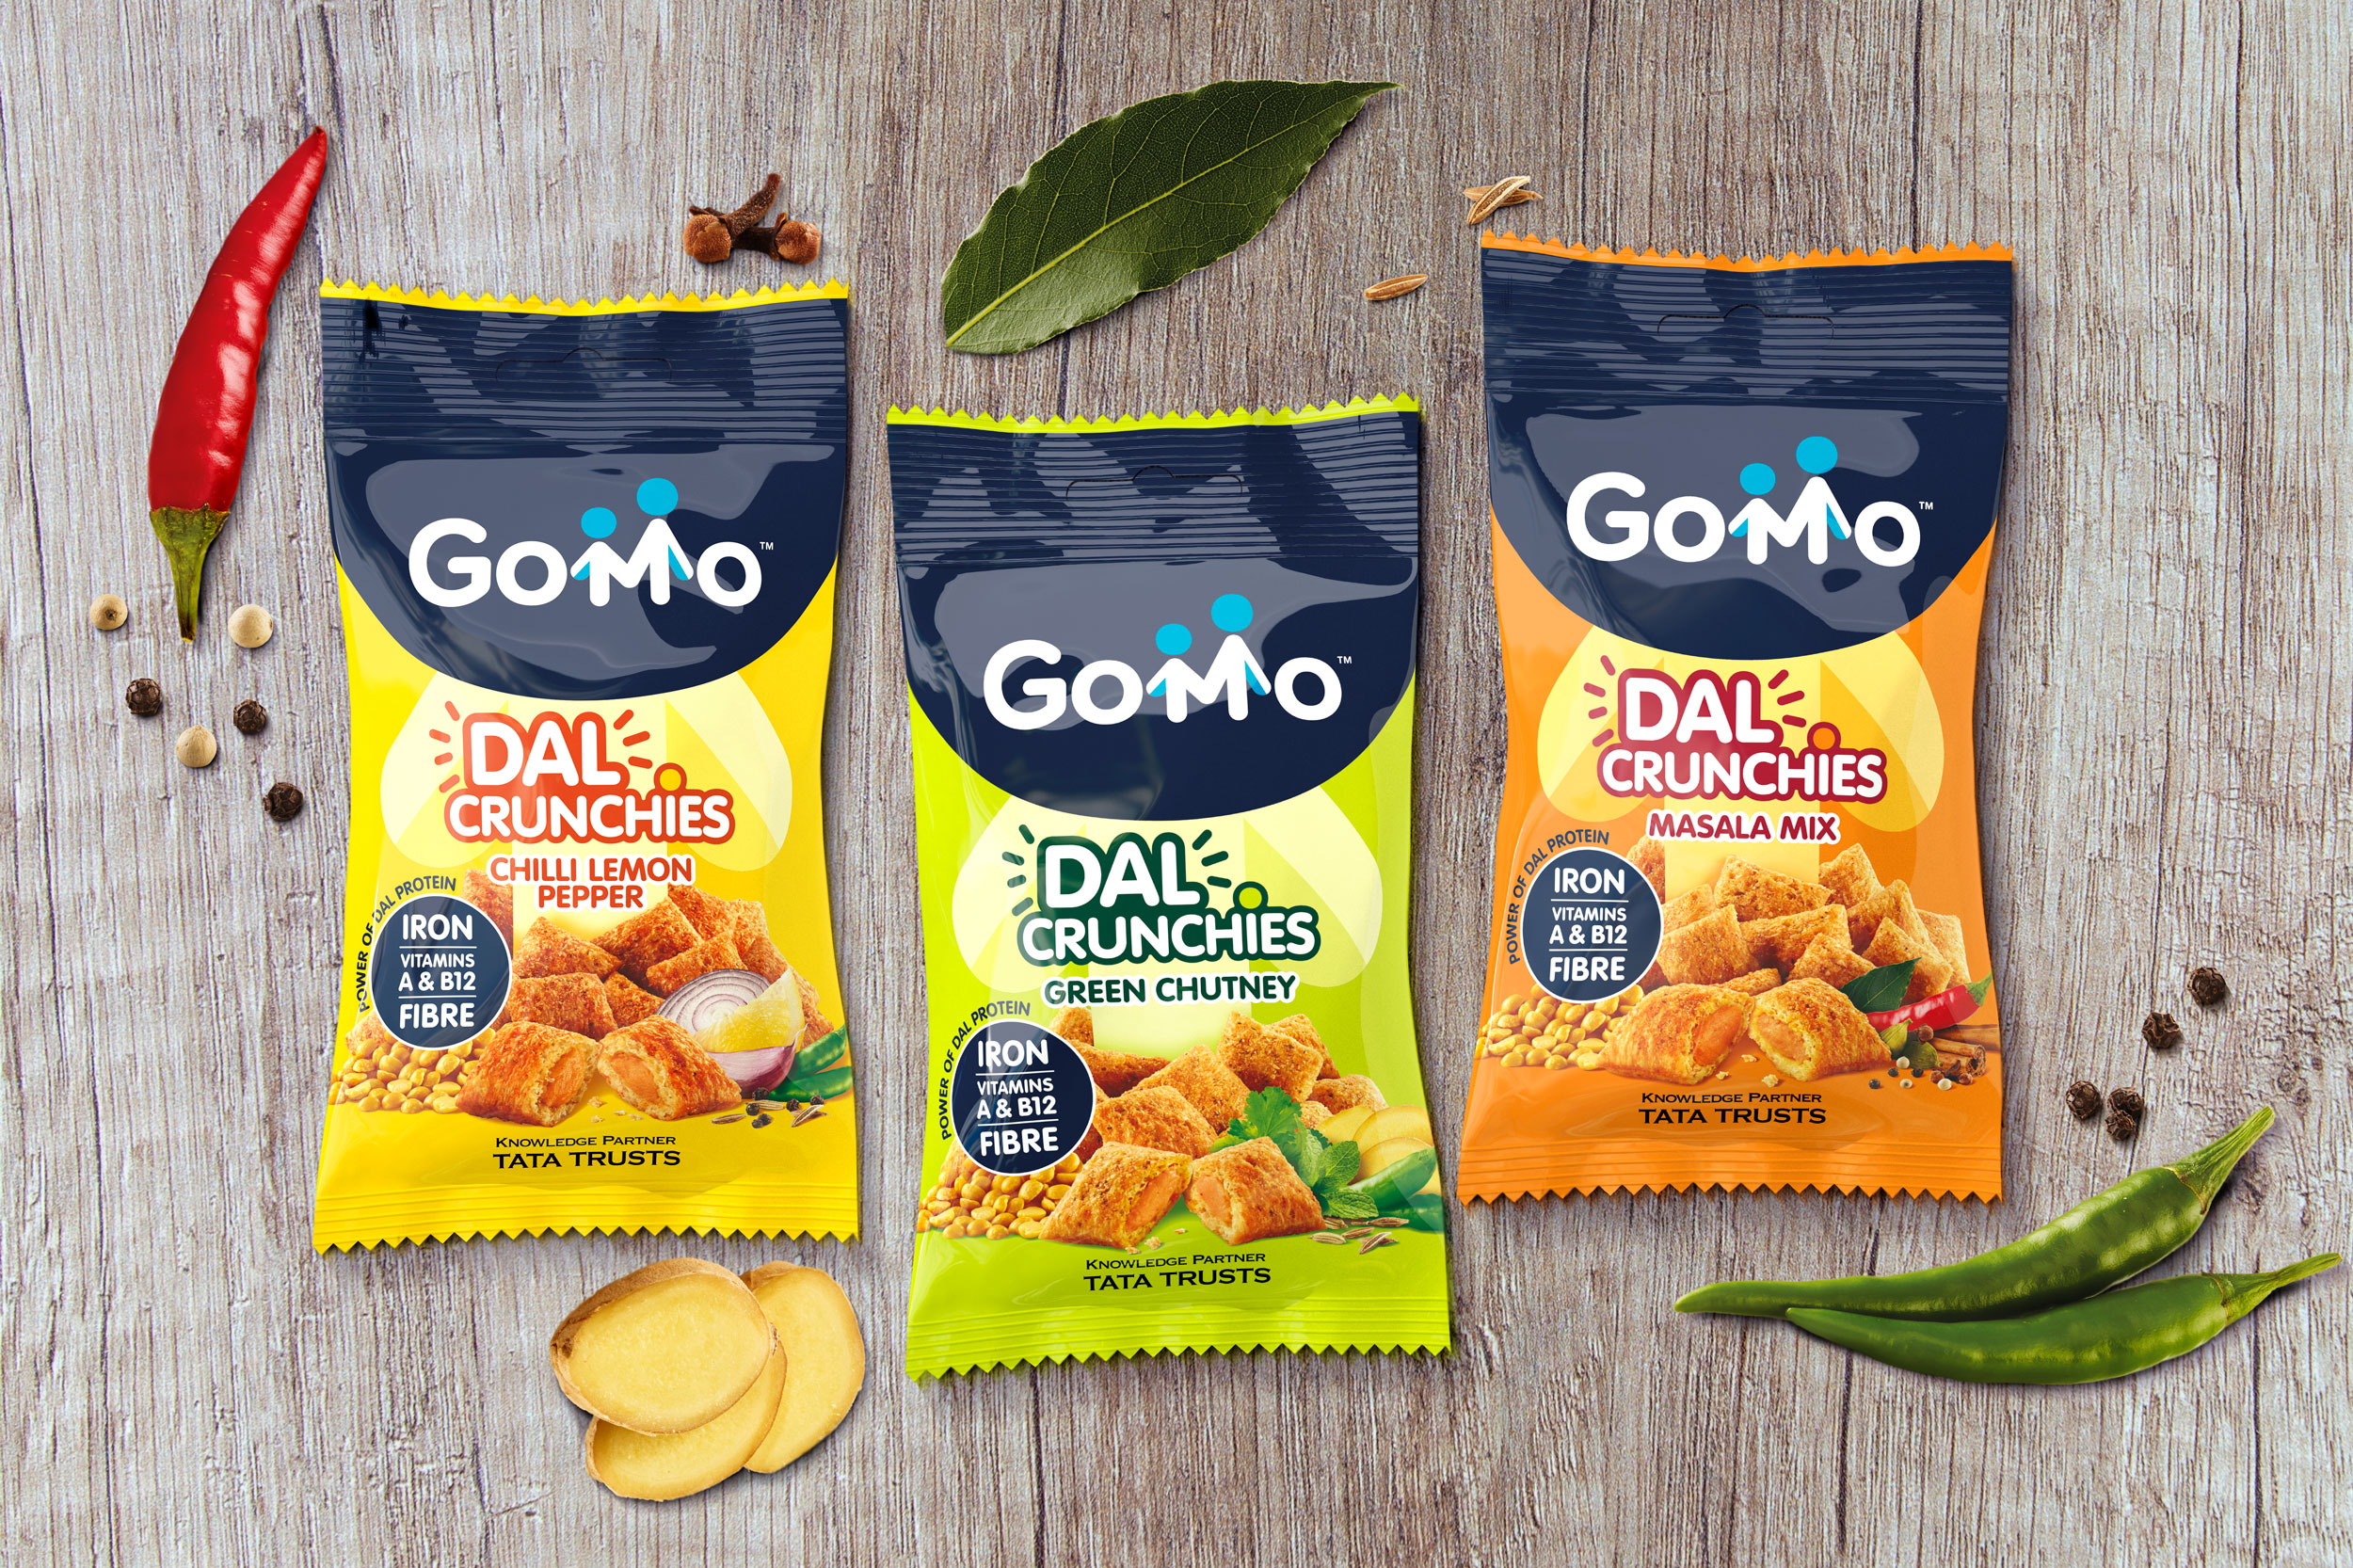 Gomo Dal Crunchies packaging design